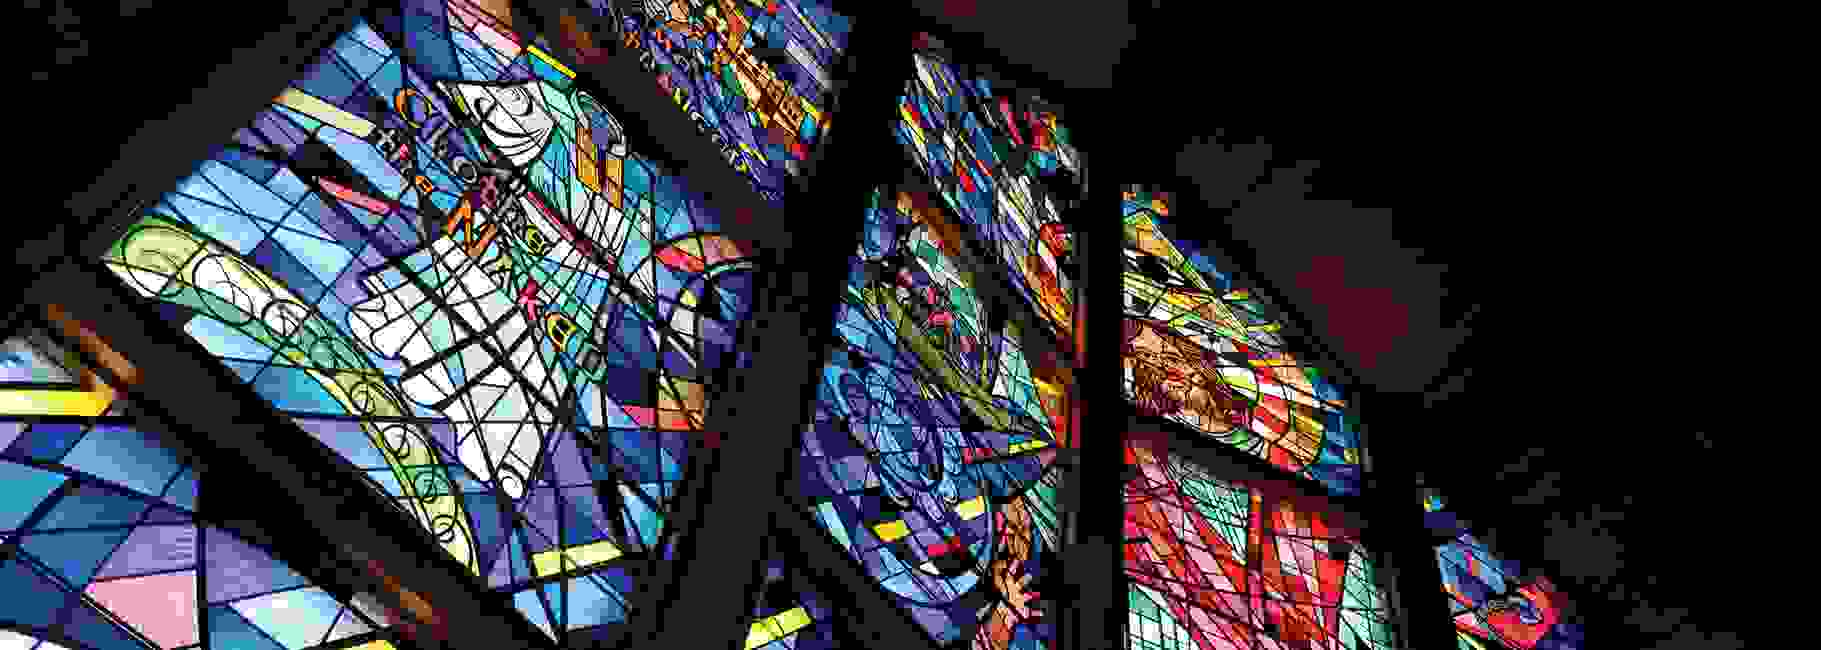 Dramatically-angled view of a large stained-glass window which depicts the Jesus walking on the sea.